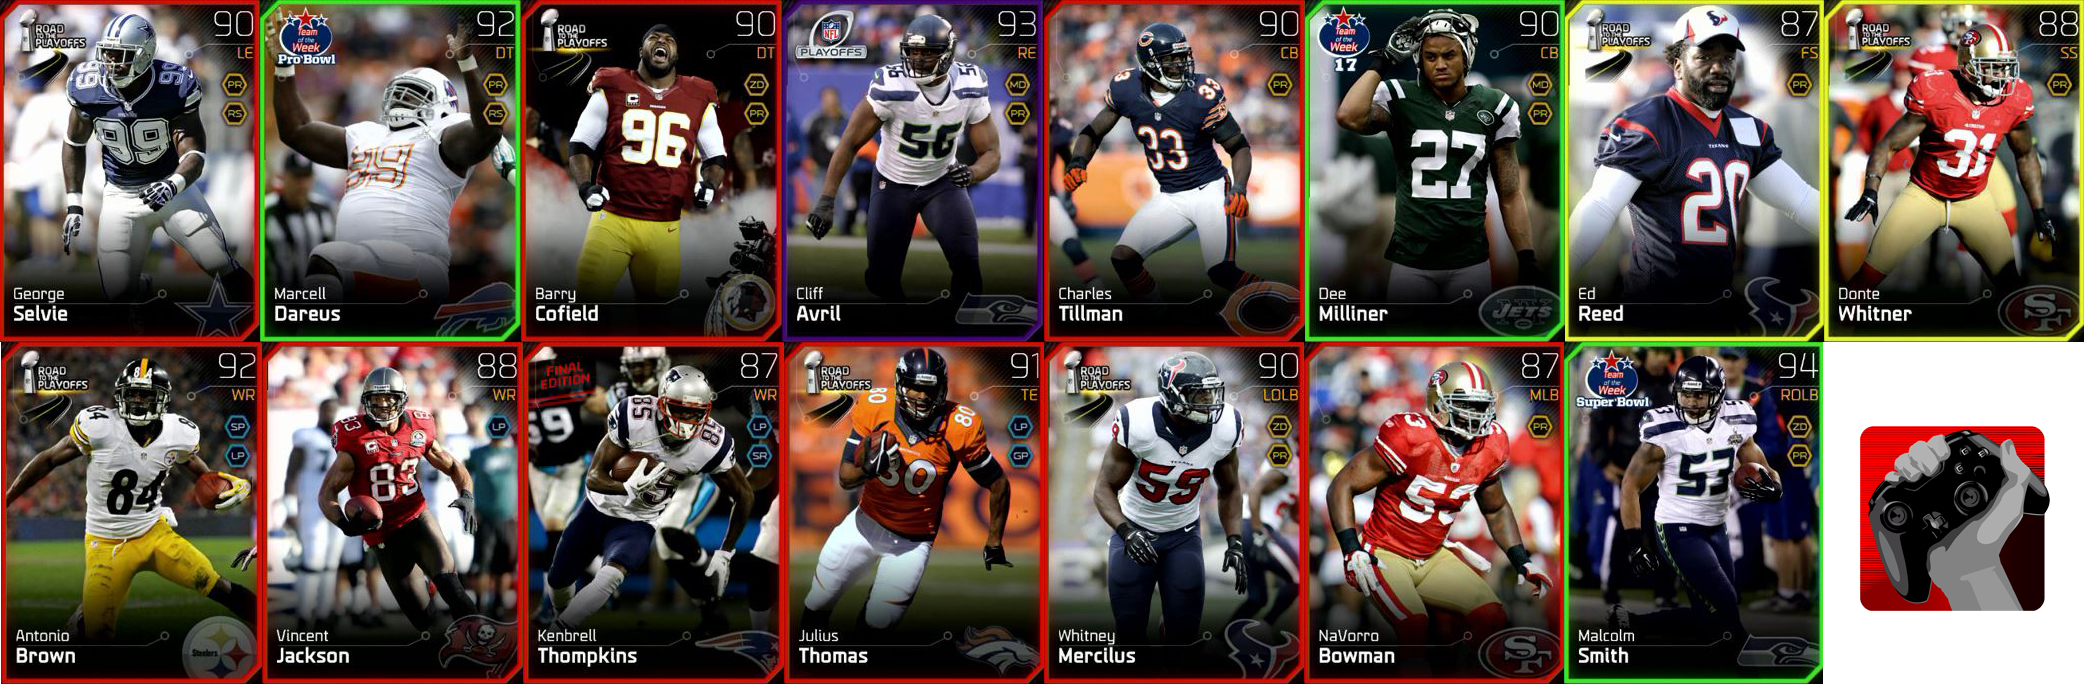 mut card giveaway all long pass or pass rush chemistry no all